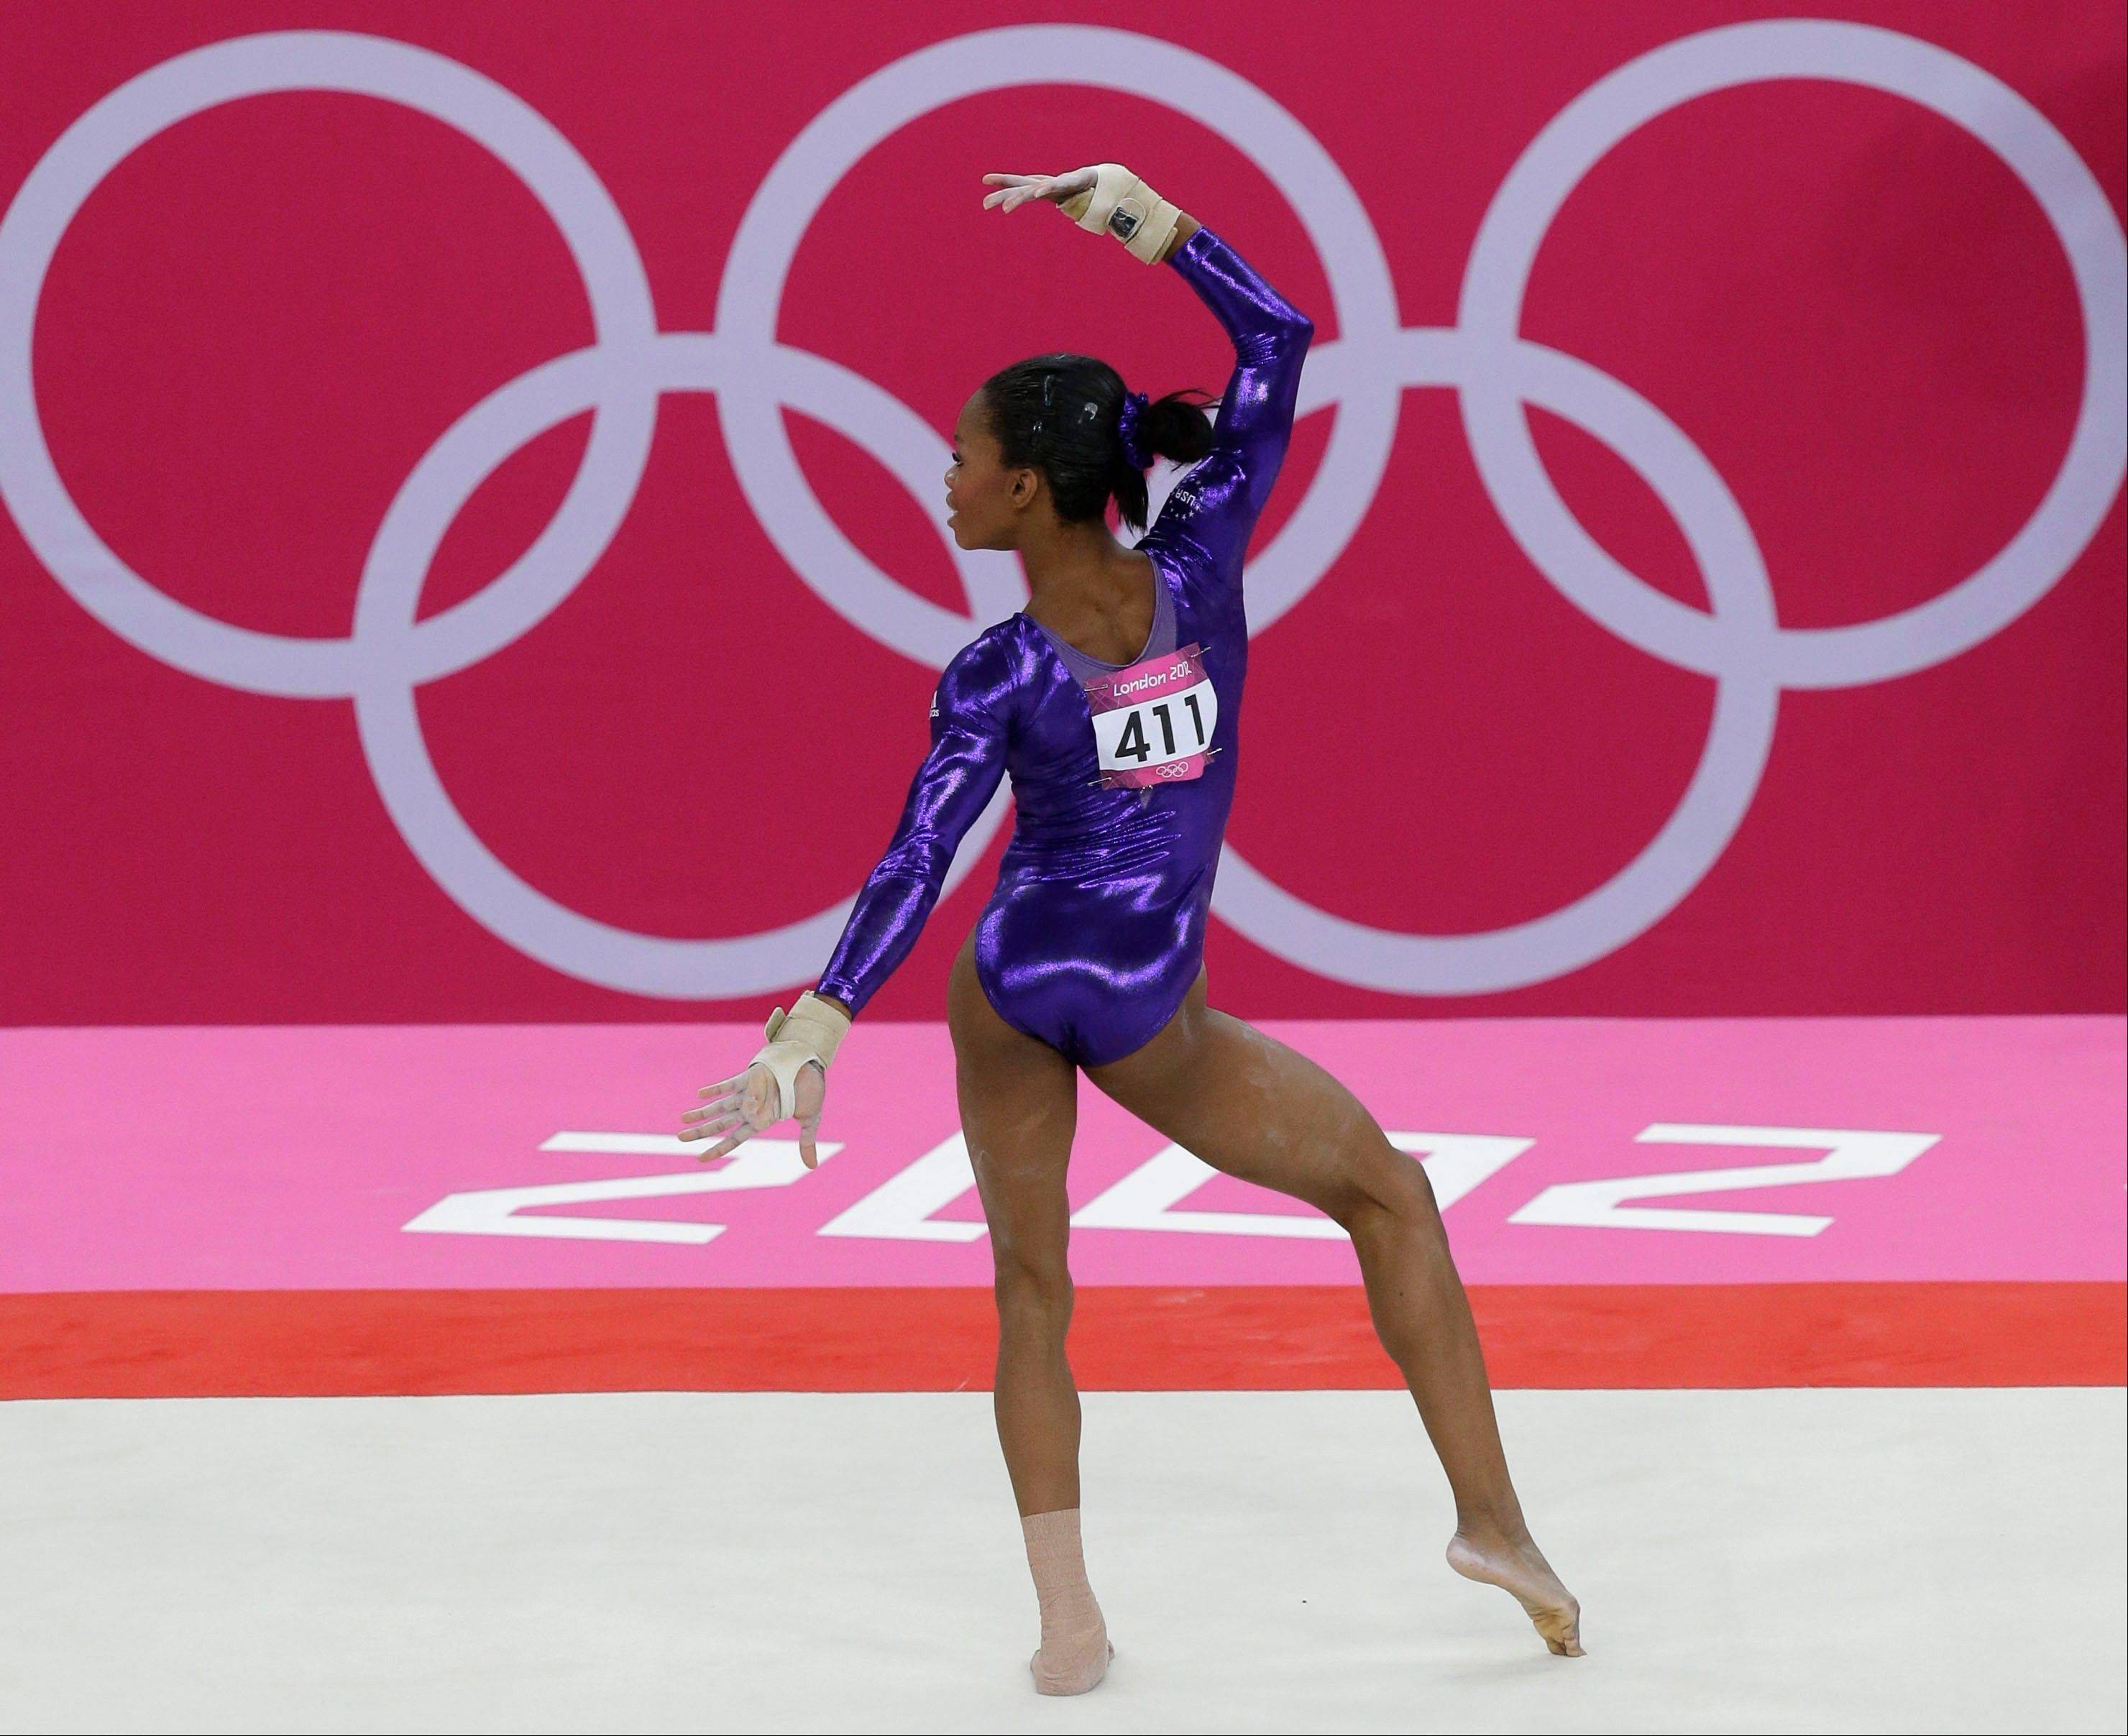 U.S. gymnast Gabrielle Douglas performs on the floor during the Artistic Gymnastic women�s qualifications at the 2012 Summer Olympics, Sunday, July 29, 2012, in London.